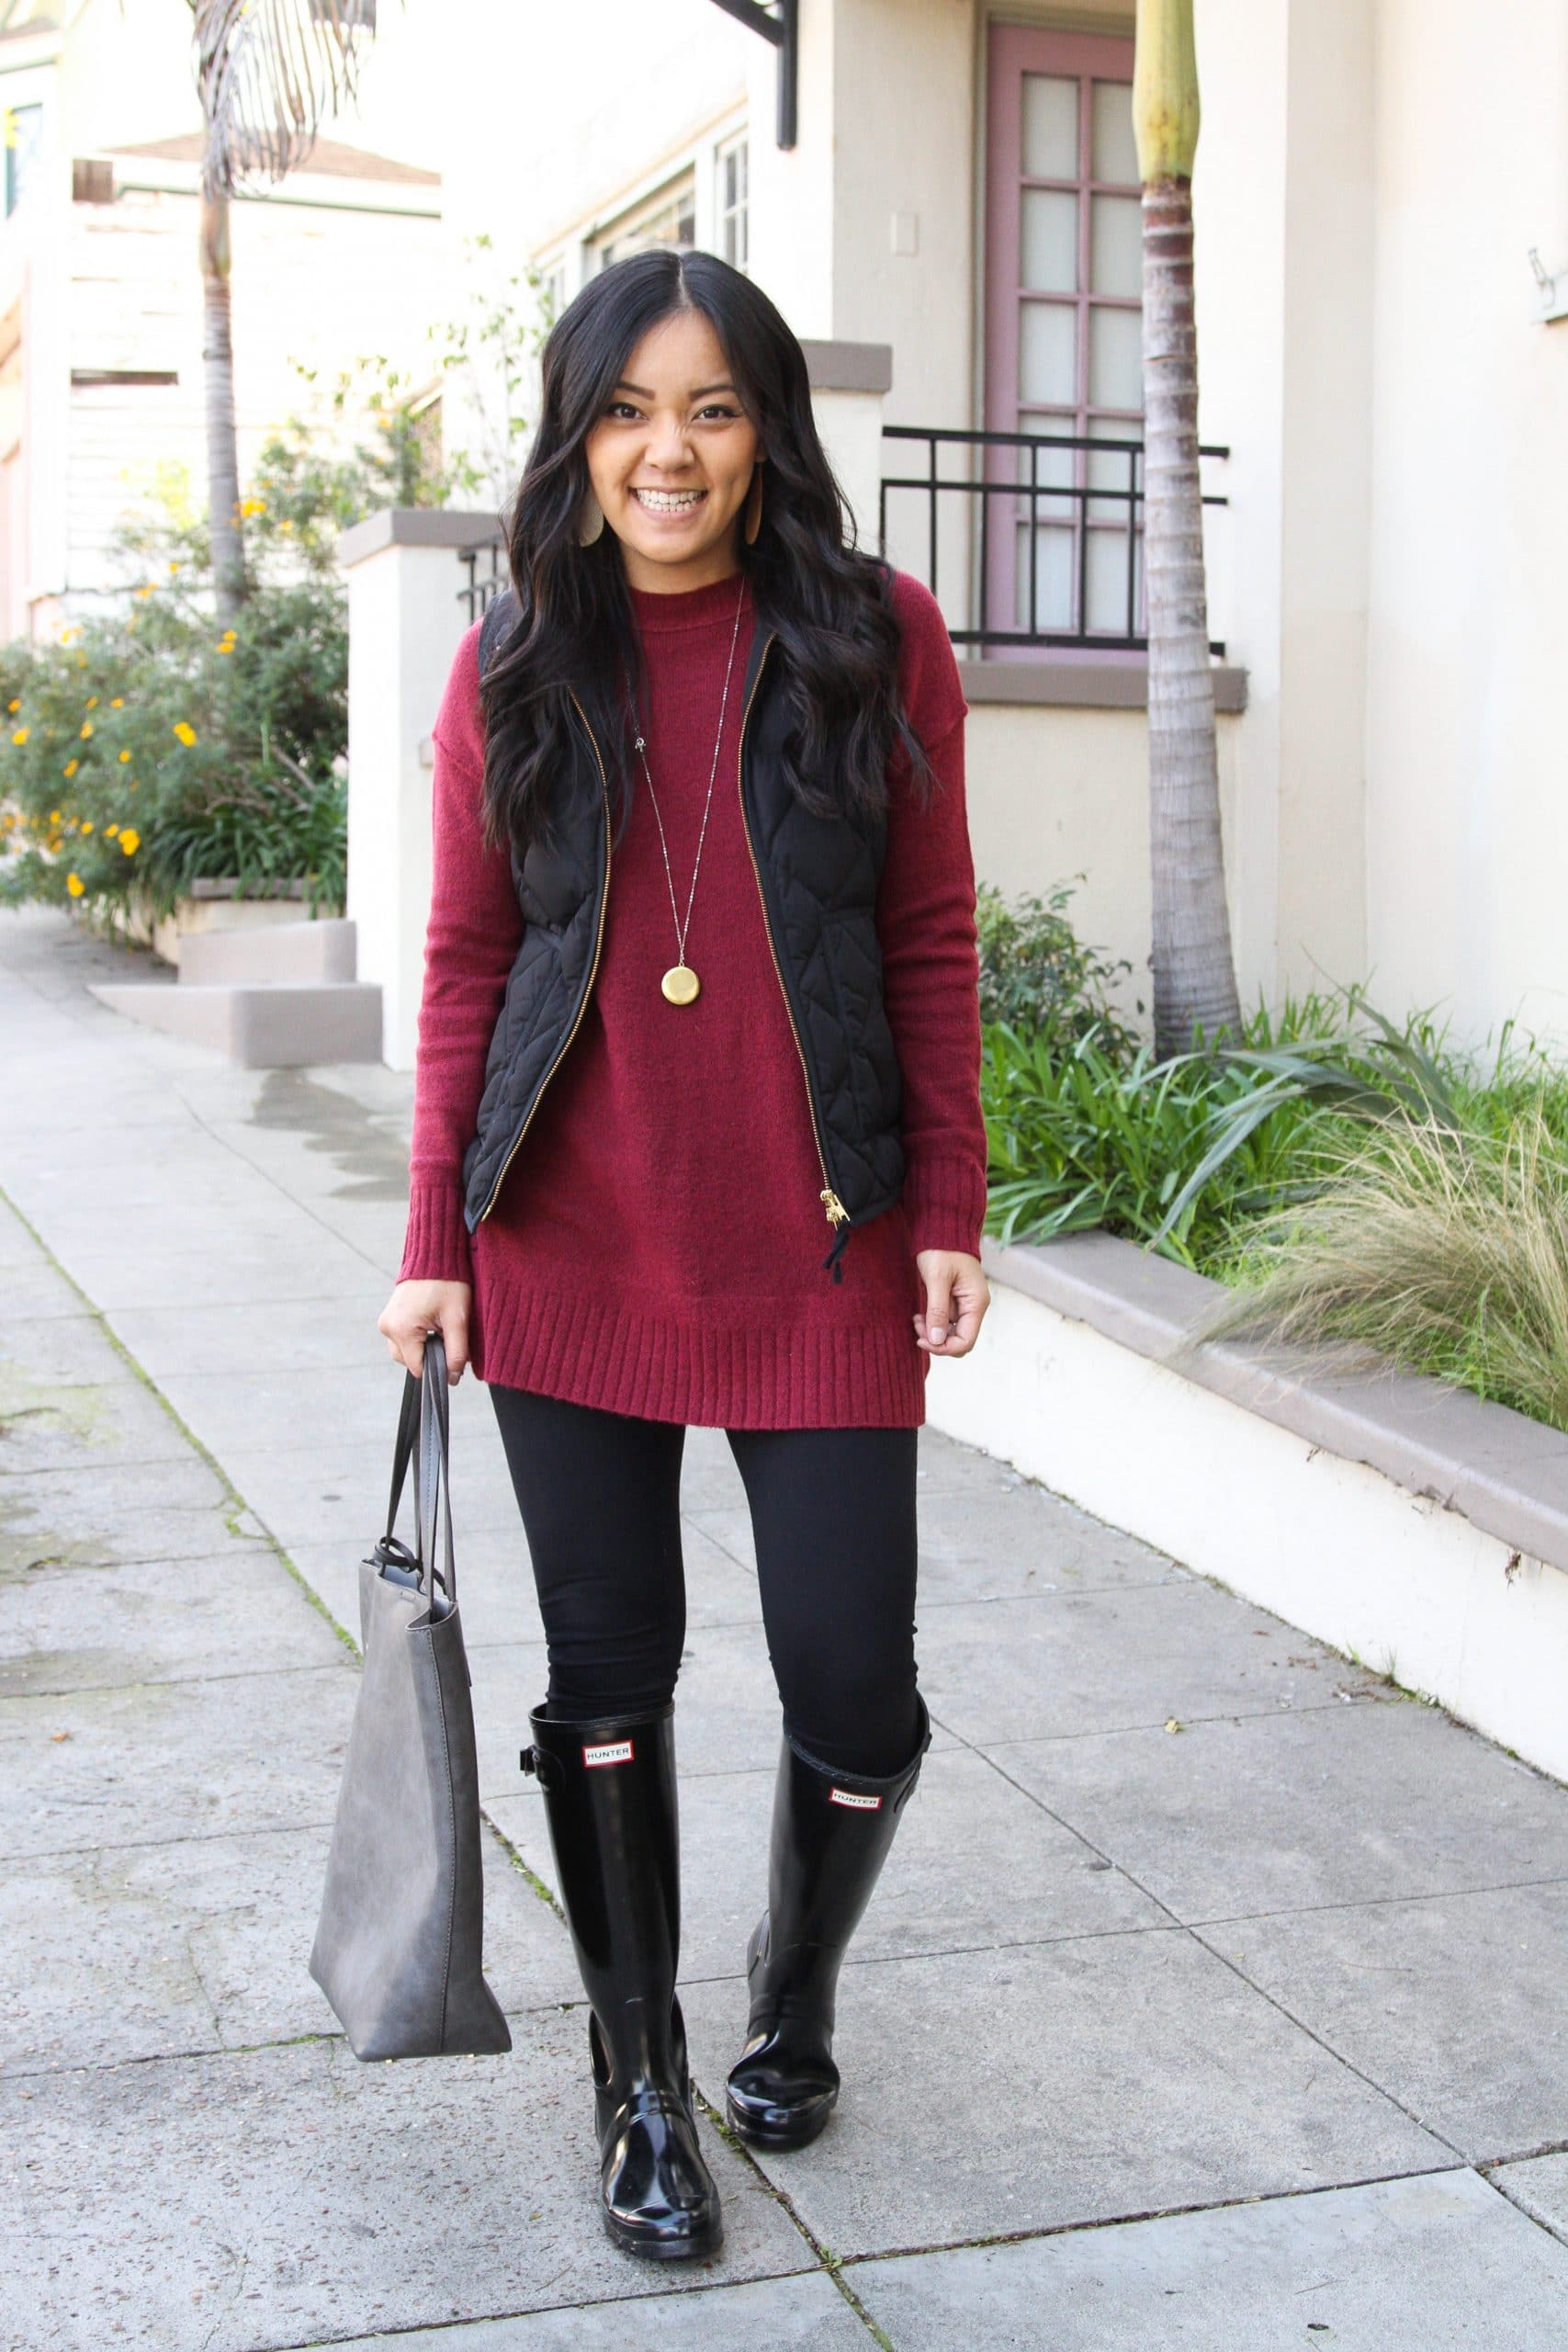 Winter Leggings Outfit: maroon tunic sweater + black leggings + black quilted vest + black rain boots + gray tote + gold pendant necklace + gold leather earrings